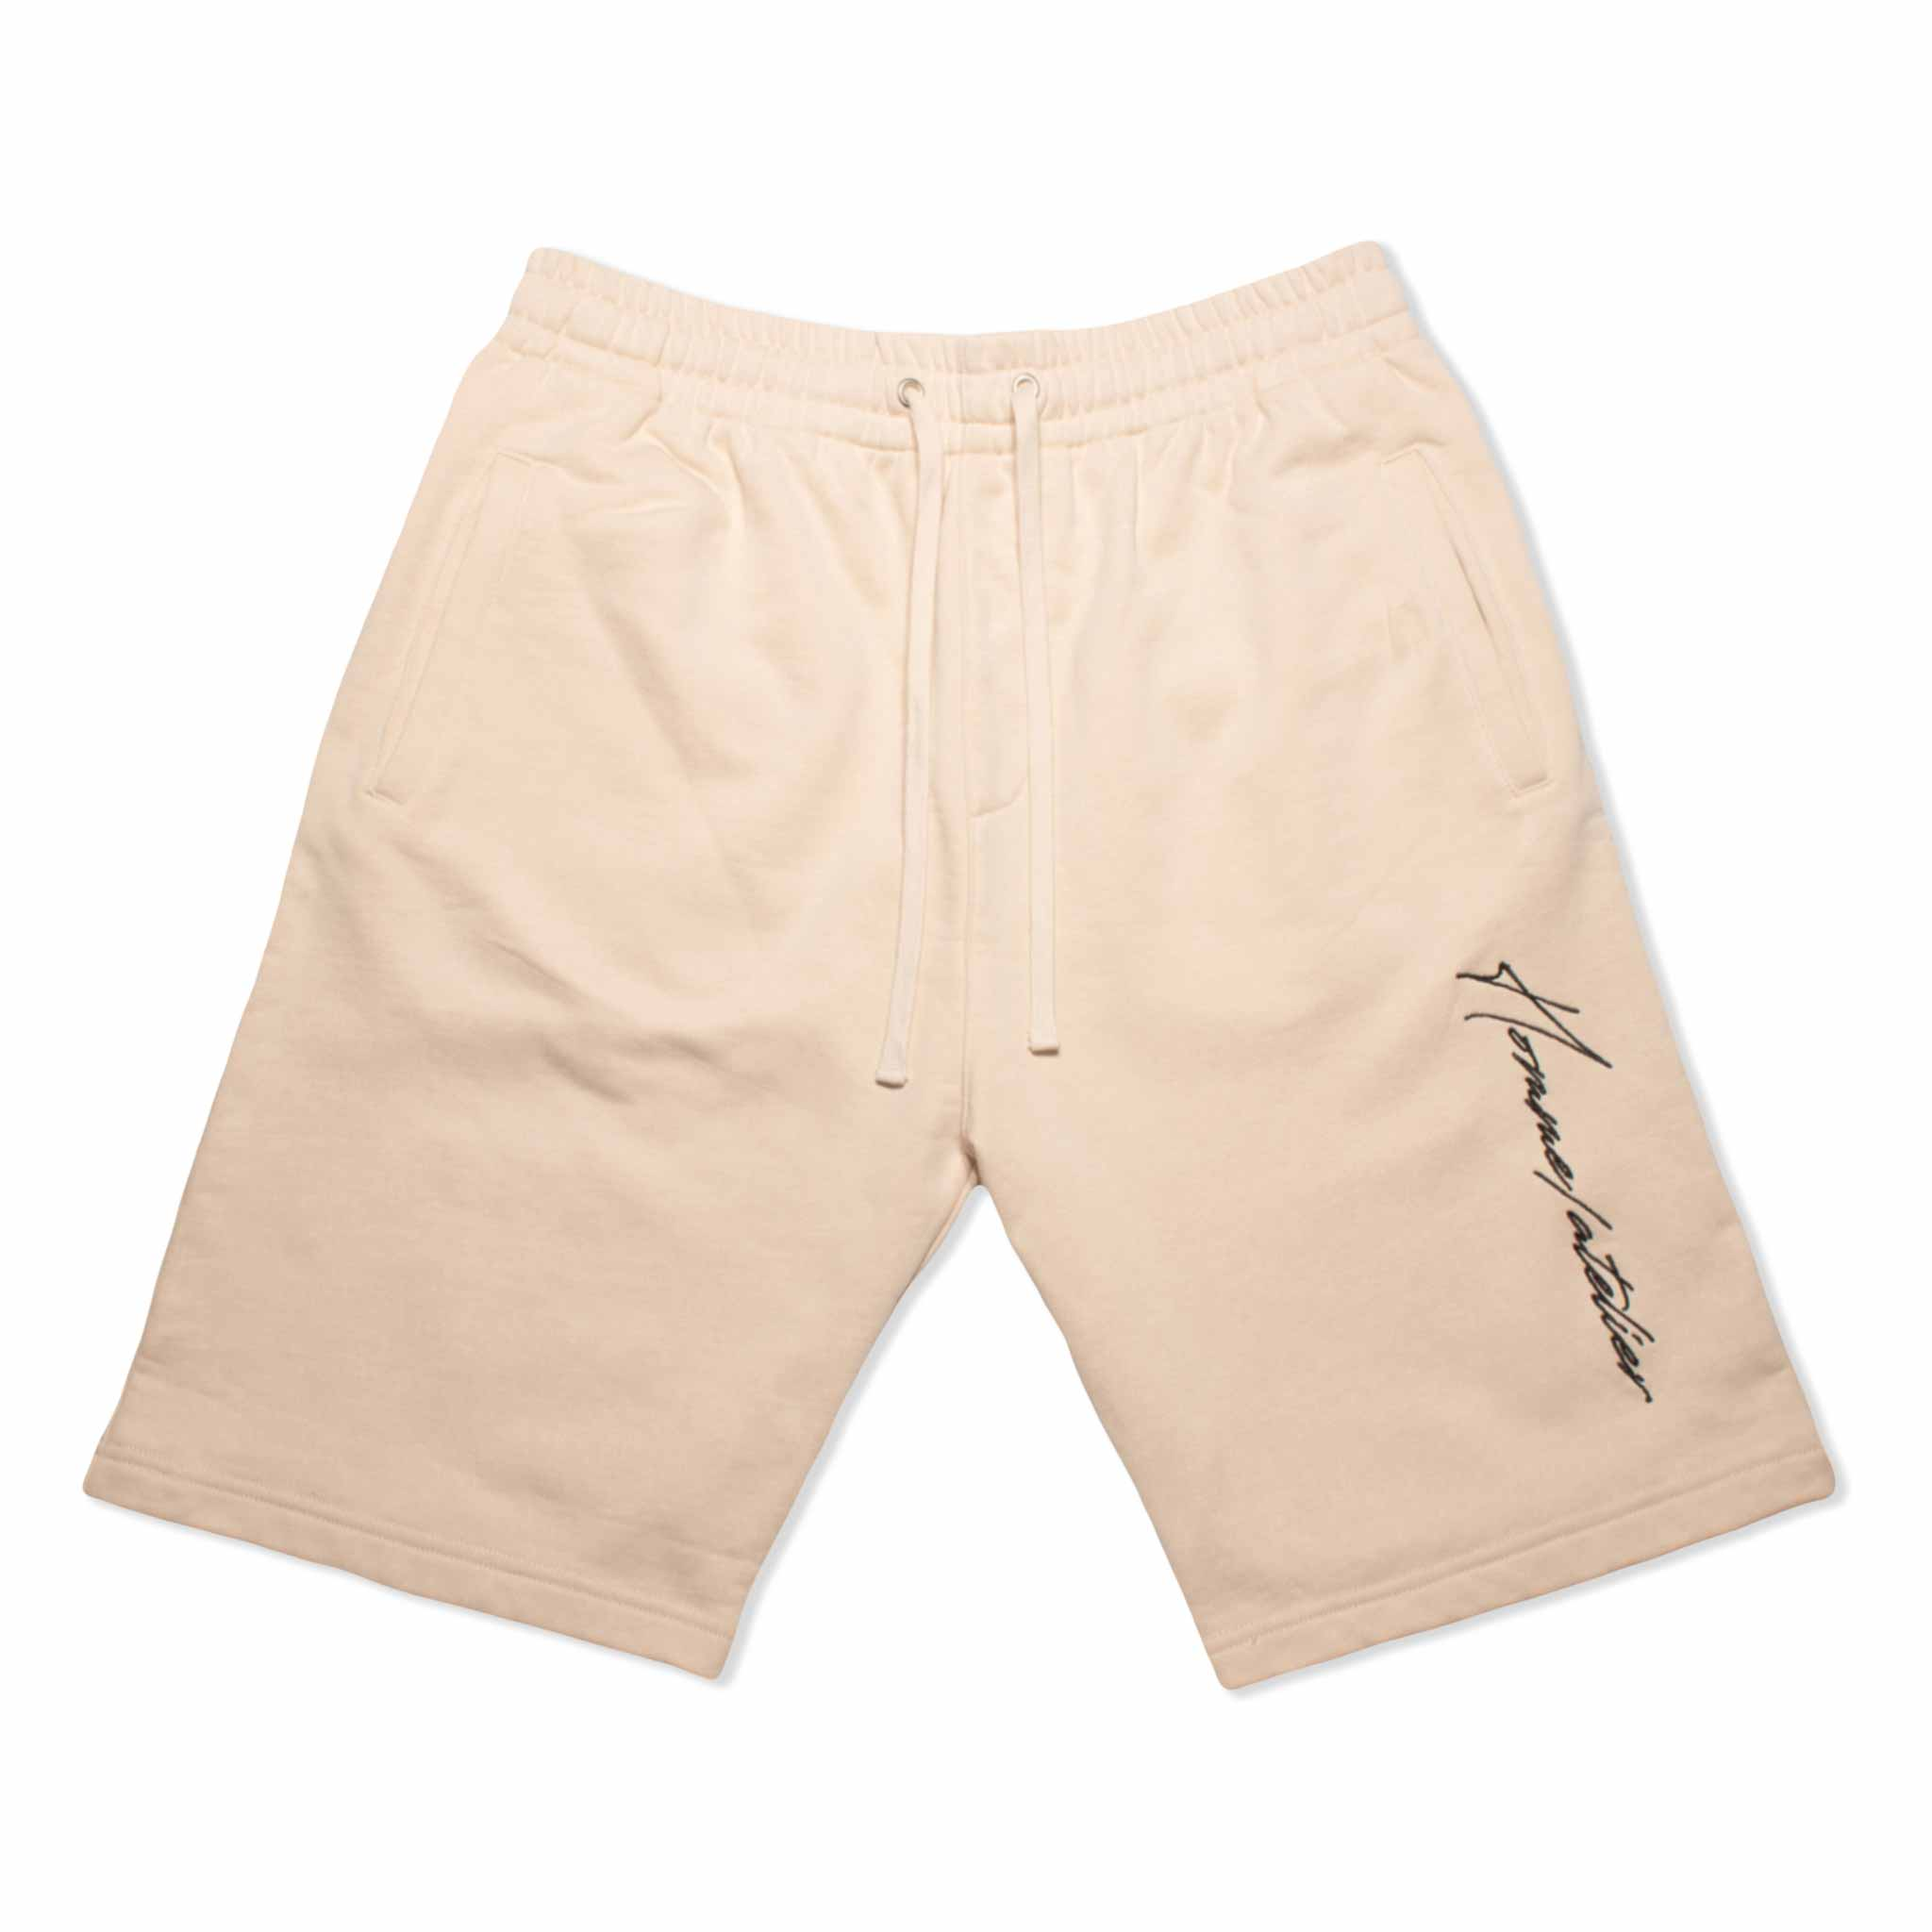 HOMME+ Atelier Embroidery Shorts Light Beige